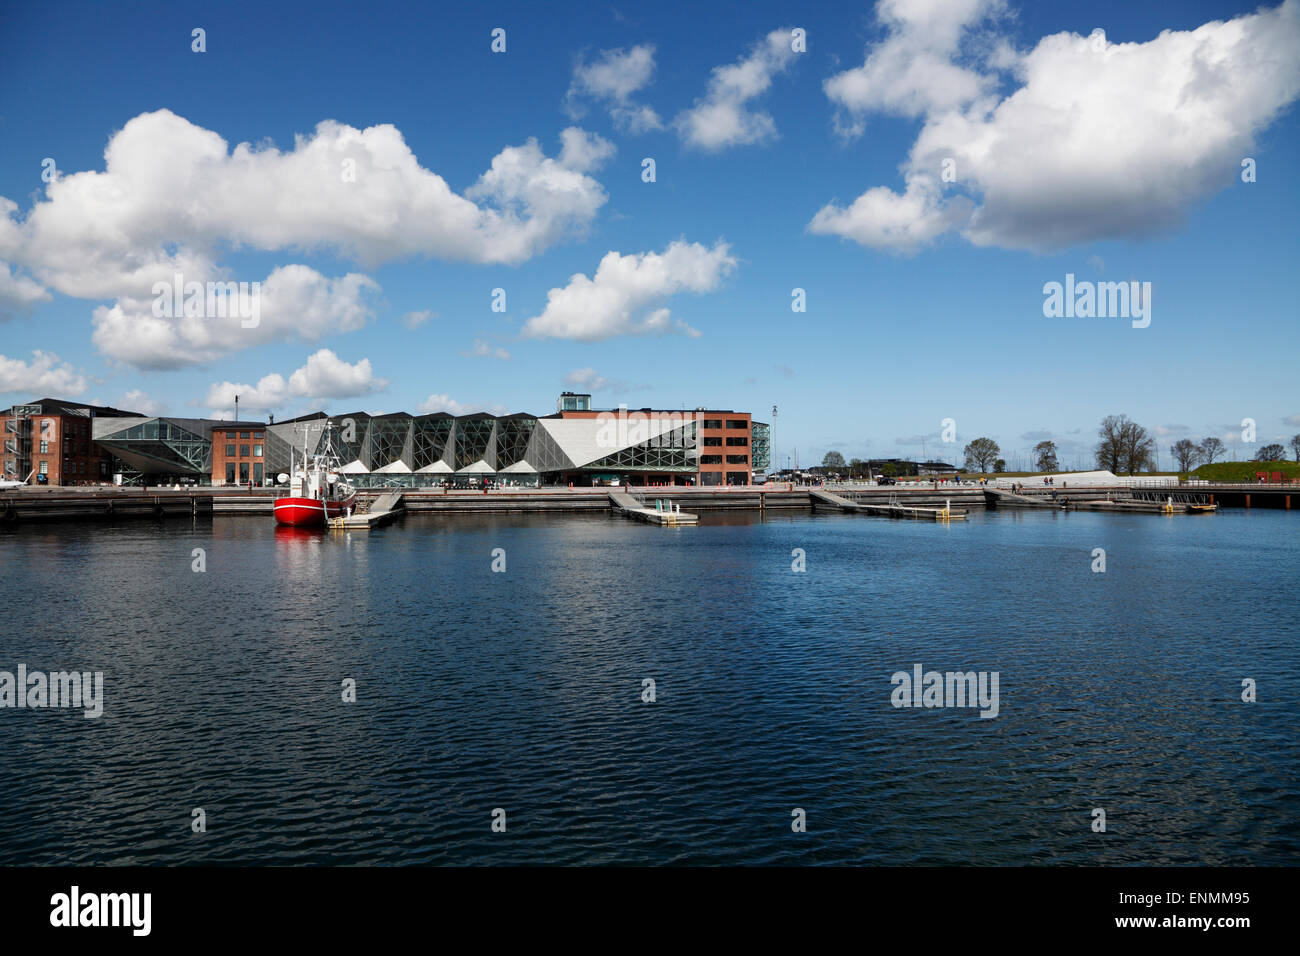 The Culture Yard and the underground Danish Maritime Museum to the right in the port of Elsinore / Helsingør, Denmark Stock Photo